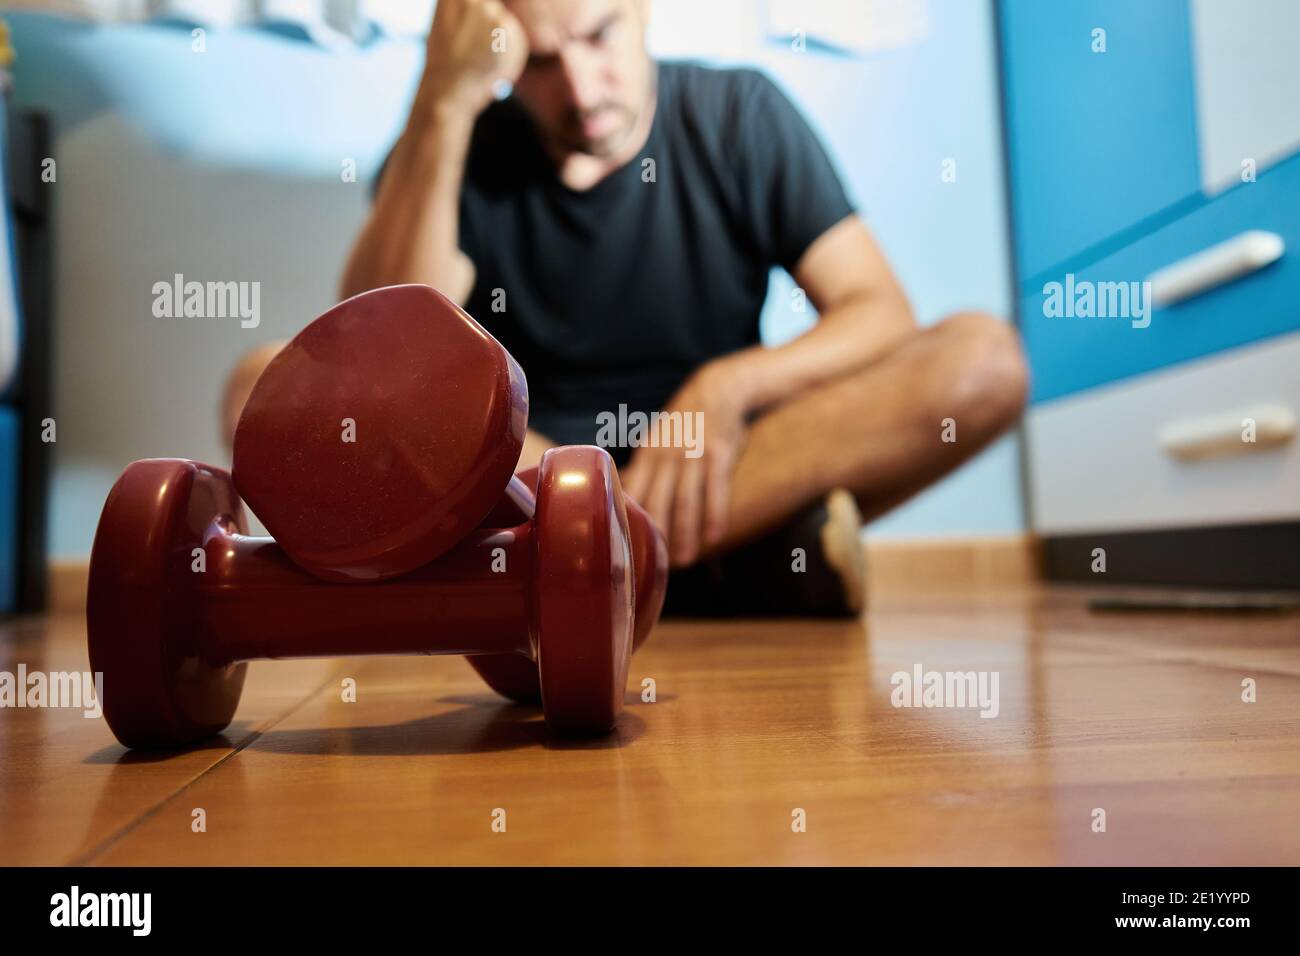 Man in his bedroom ready to do sport with weights, depressed or thinking state, selective approach Stock Photo